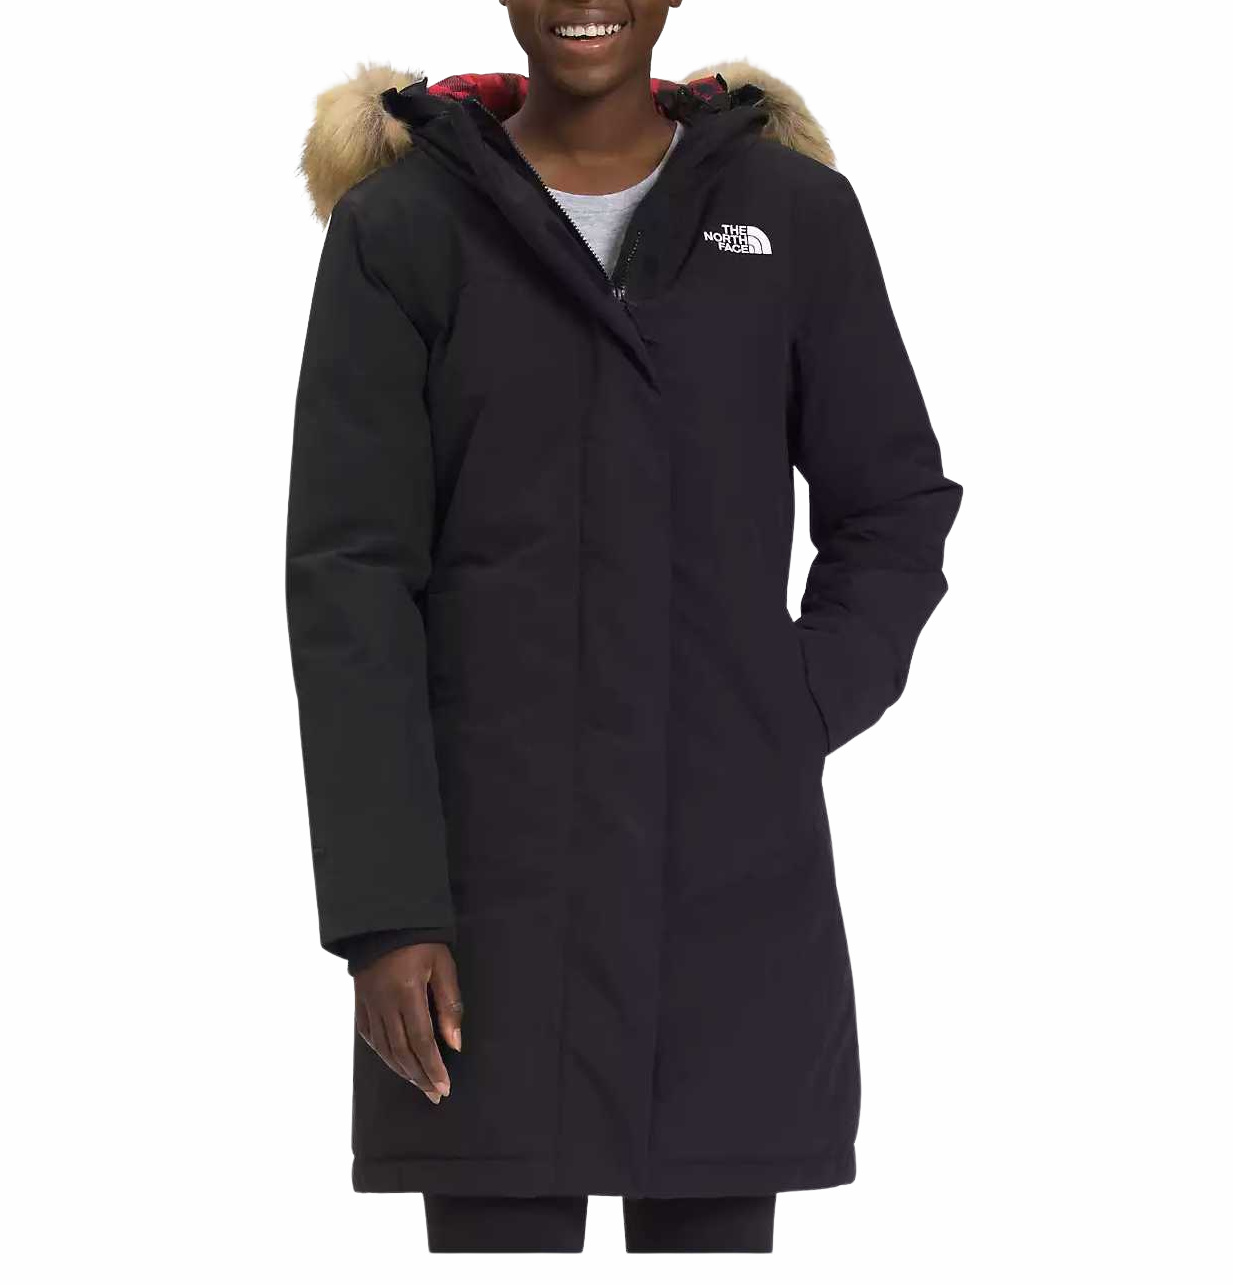 the-north-face-arctic-down-parka-women's